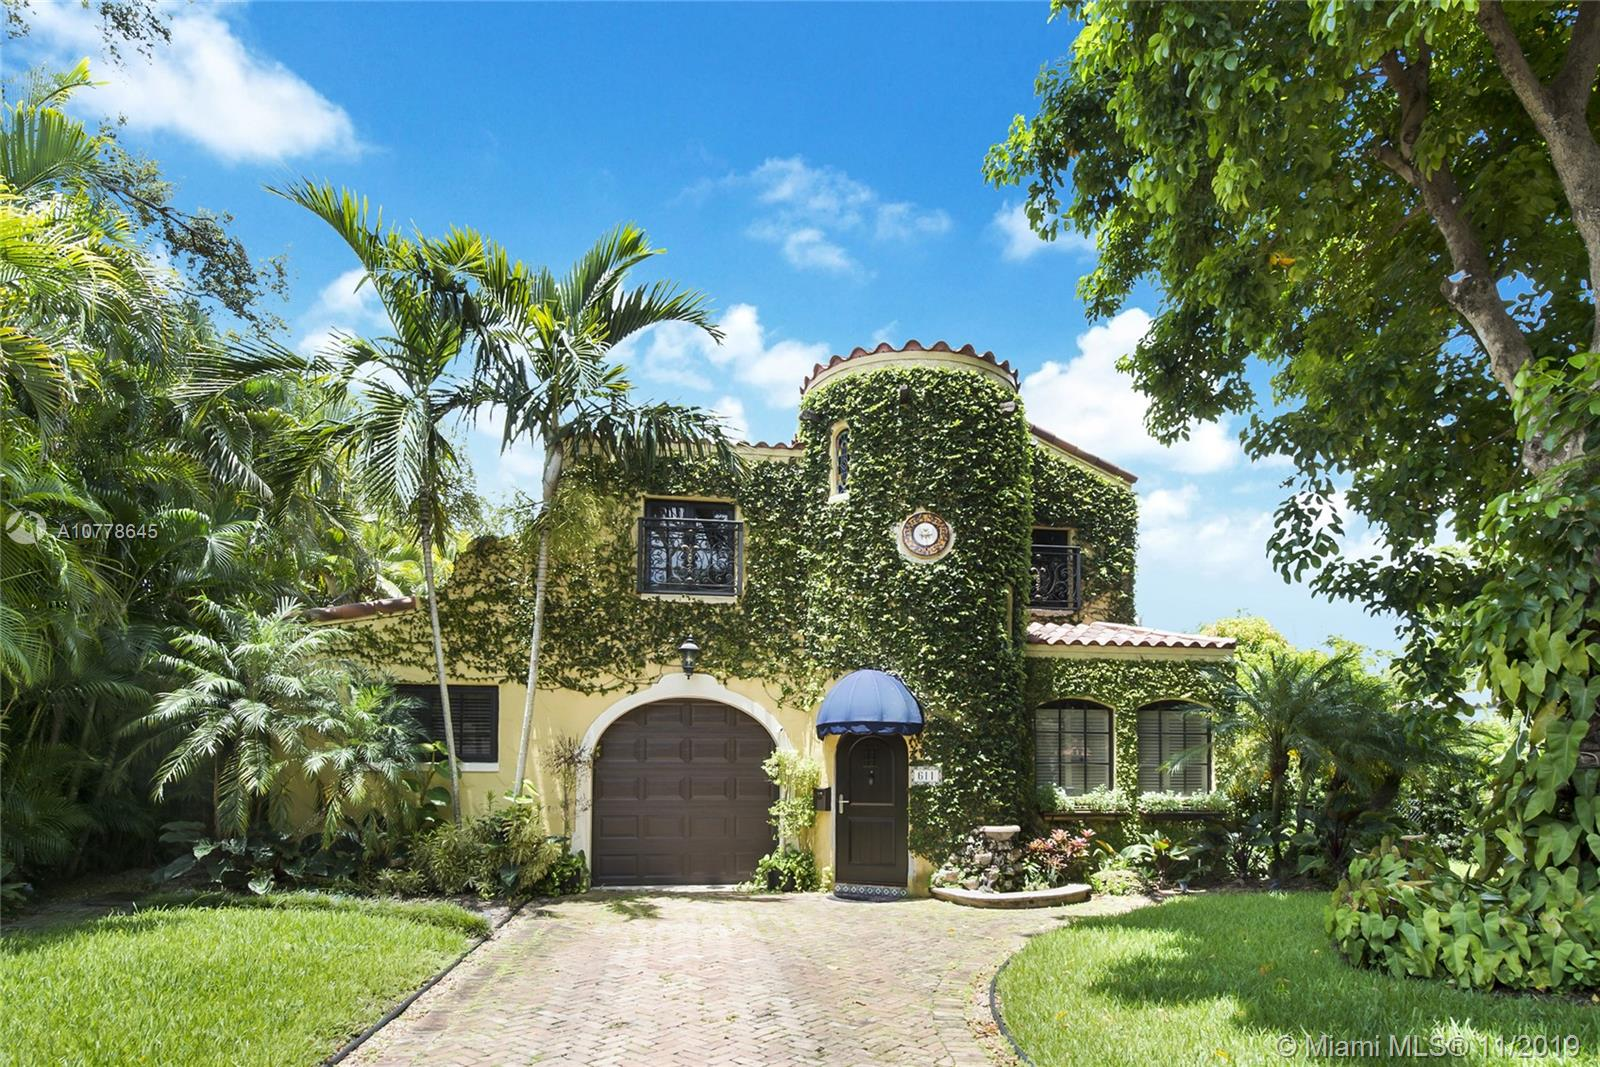 611  San Antonio Ave.  For Sale A10778645, FL